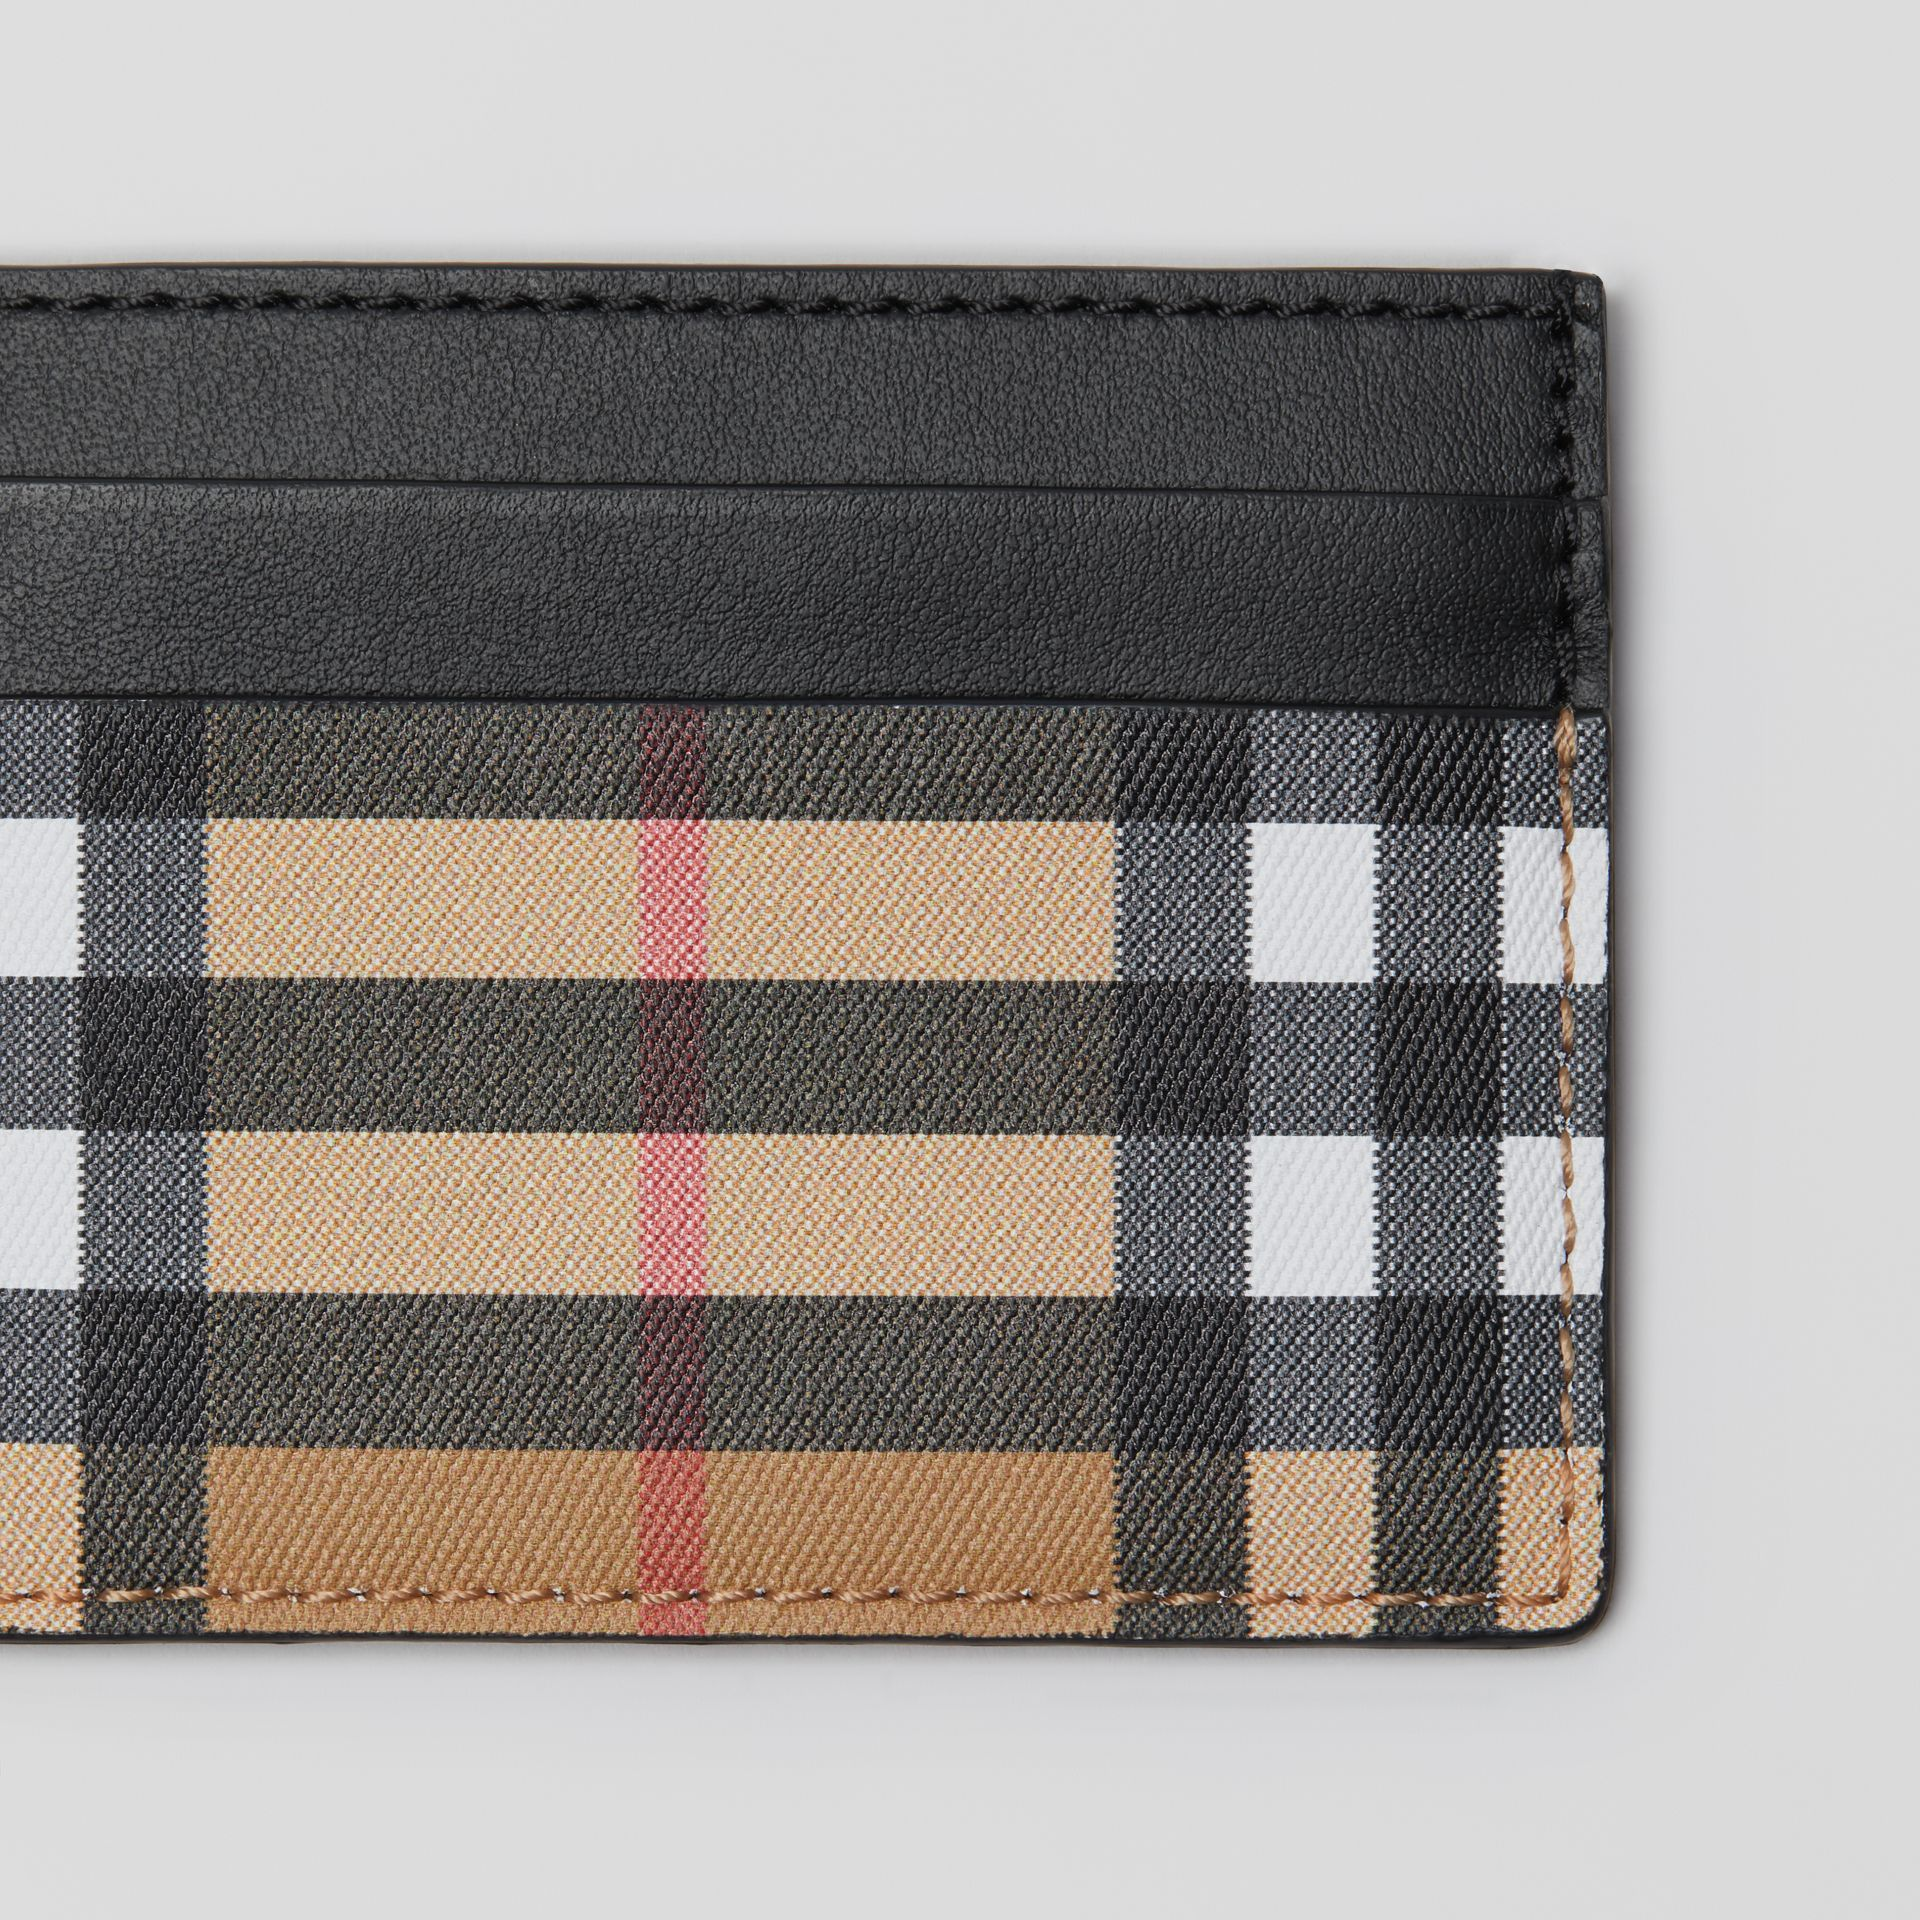 Vintage Check Leather Card Case in Black - Women | Burberry Singapore - gallery image 1